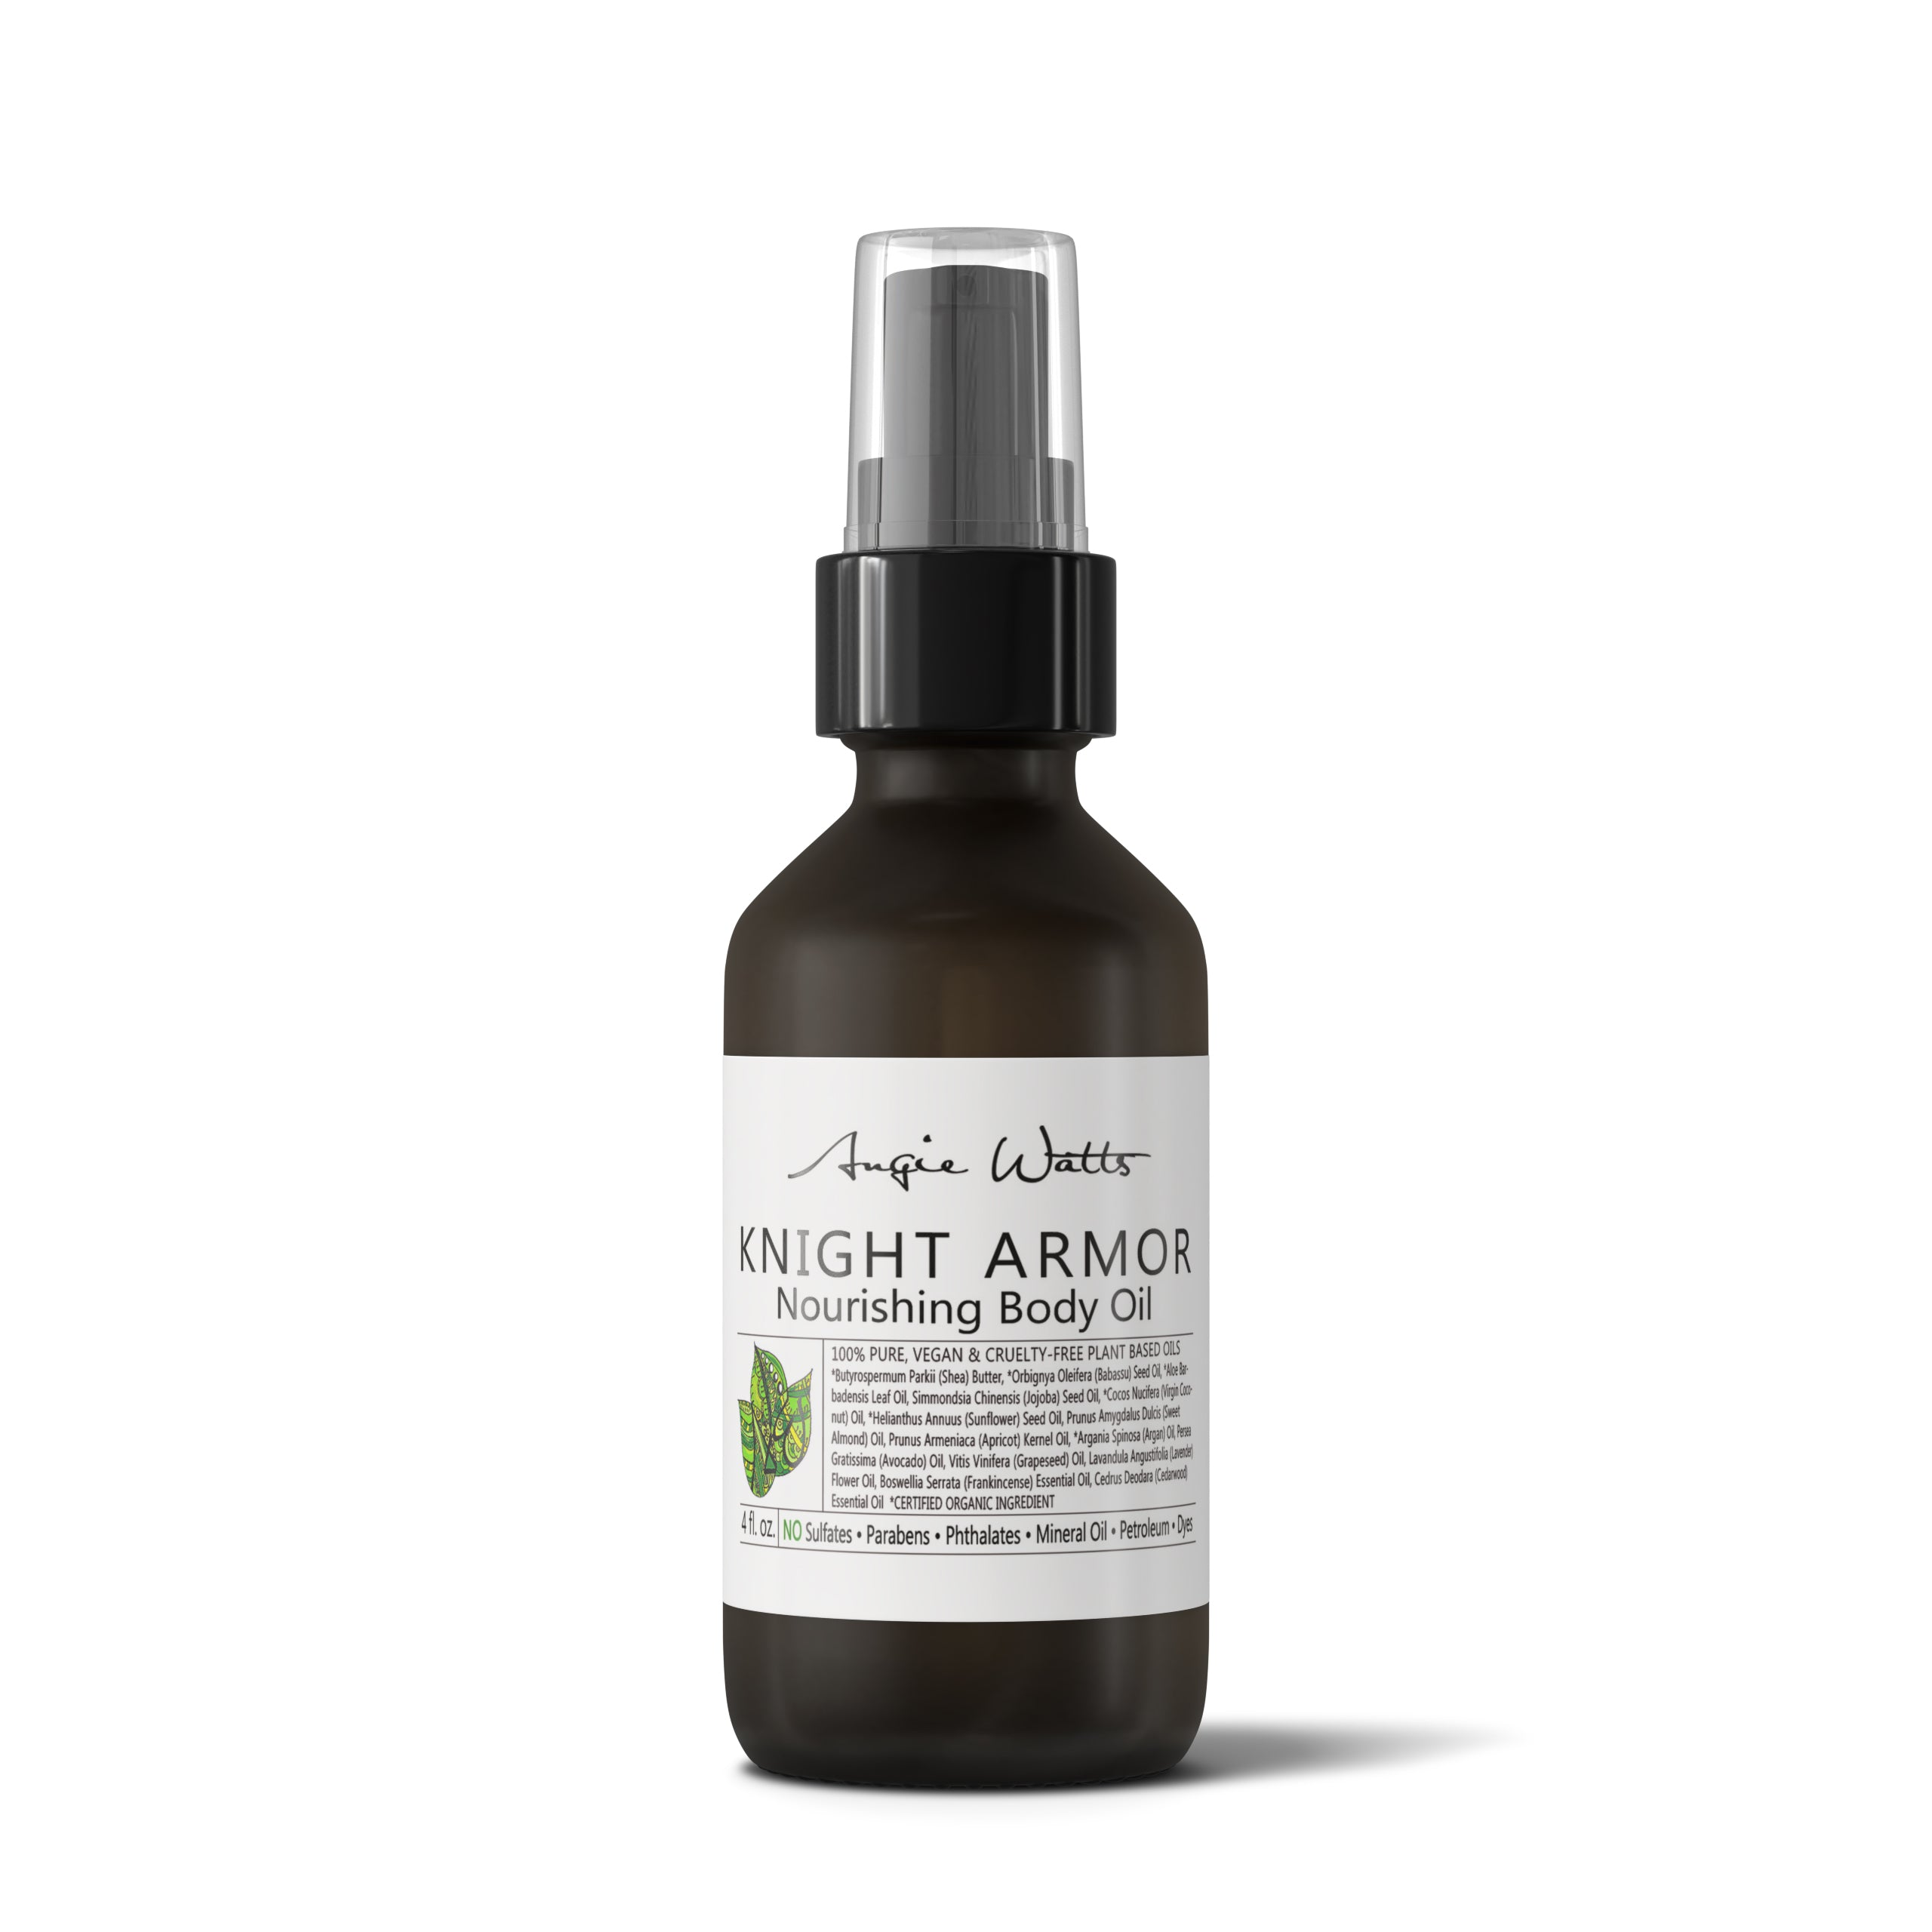 Angie Watts Knight Armor Nourishing Body Oil